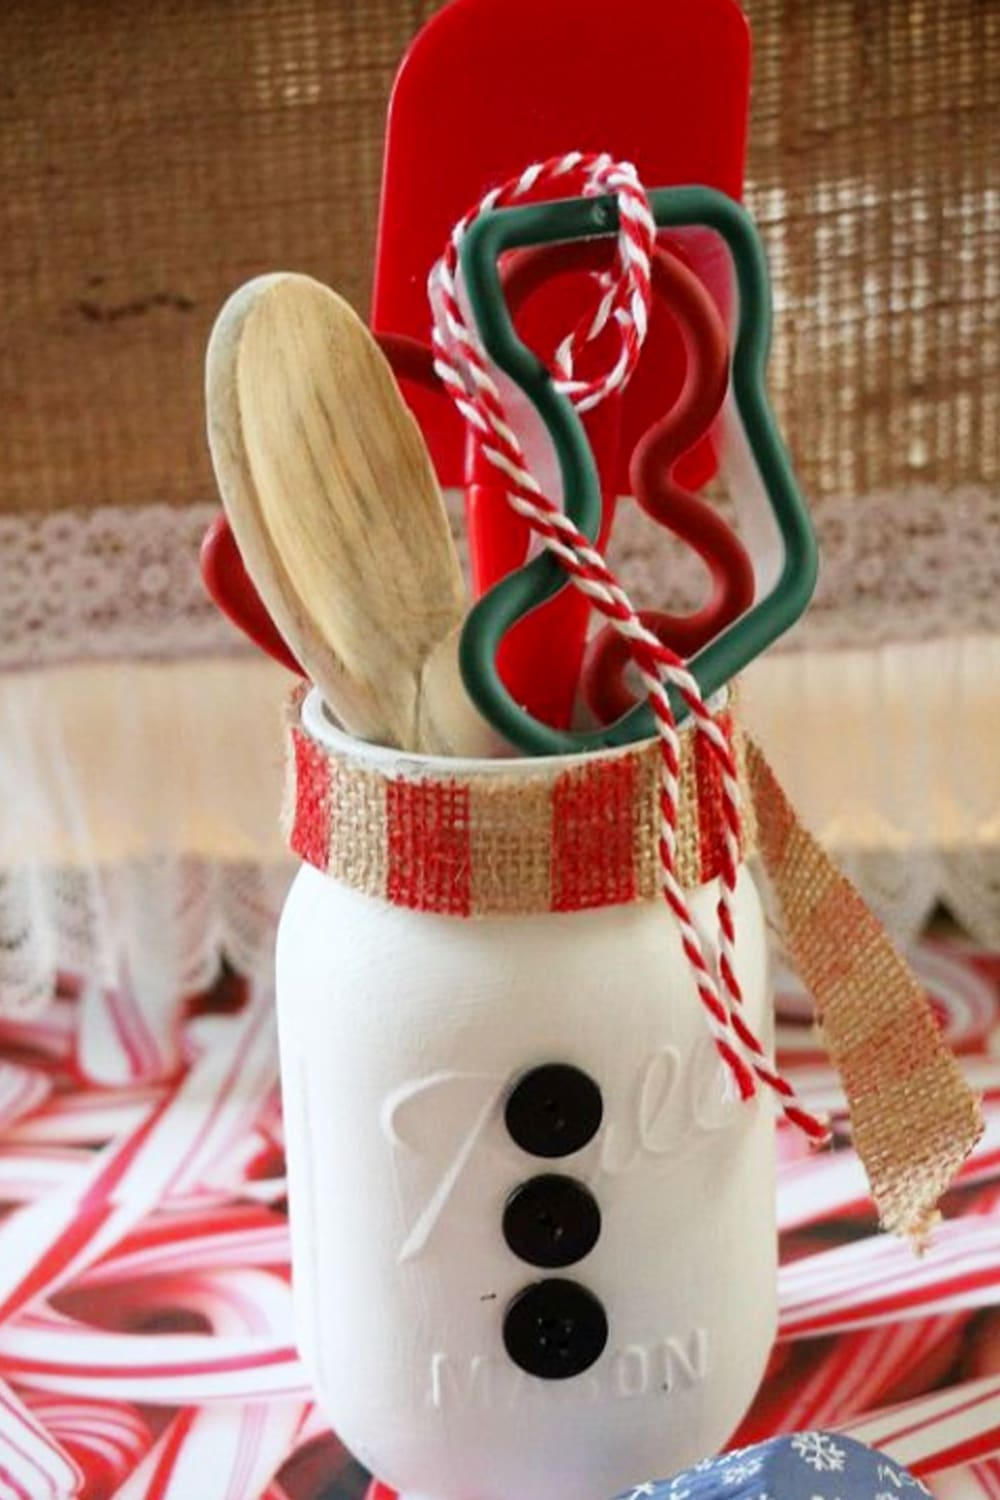 Mason Jar Christmas Gifts and Crafts - Easy Mason Jar Christmas Gift Ideas for Homemade Holiday Gifts for Neighbors, teachers, friends, co-workers and family. Easy DIY Christmas mason jars and Christmas mason jar decorating ideas - how to decorate mason jars for Christmas gifts - DIY Mason Jar Gifts and Cute Mason Jar Ideas For Christmas Presents